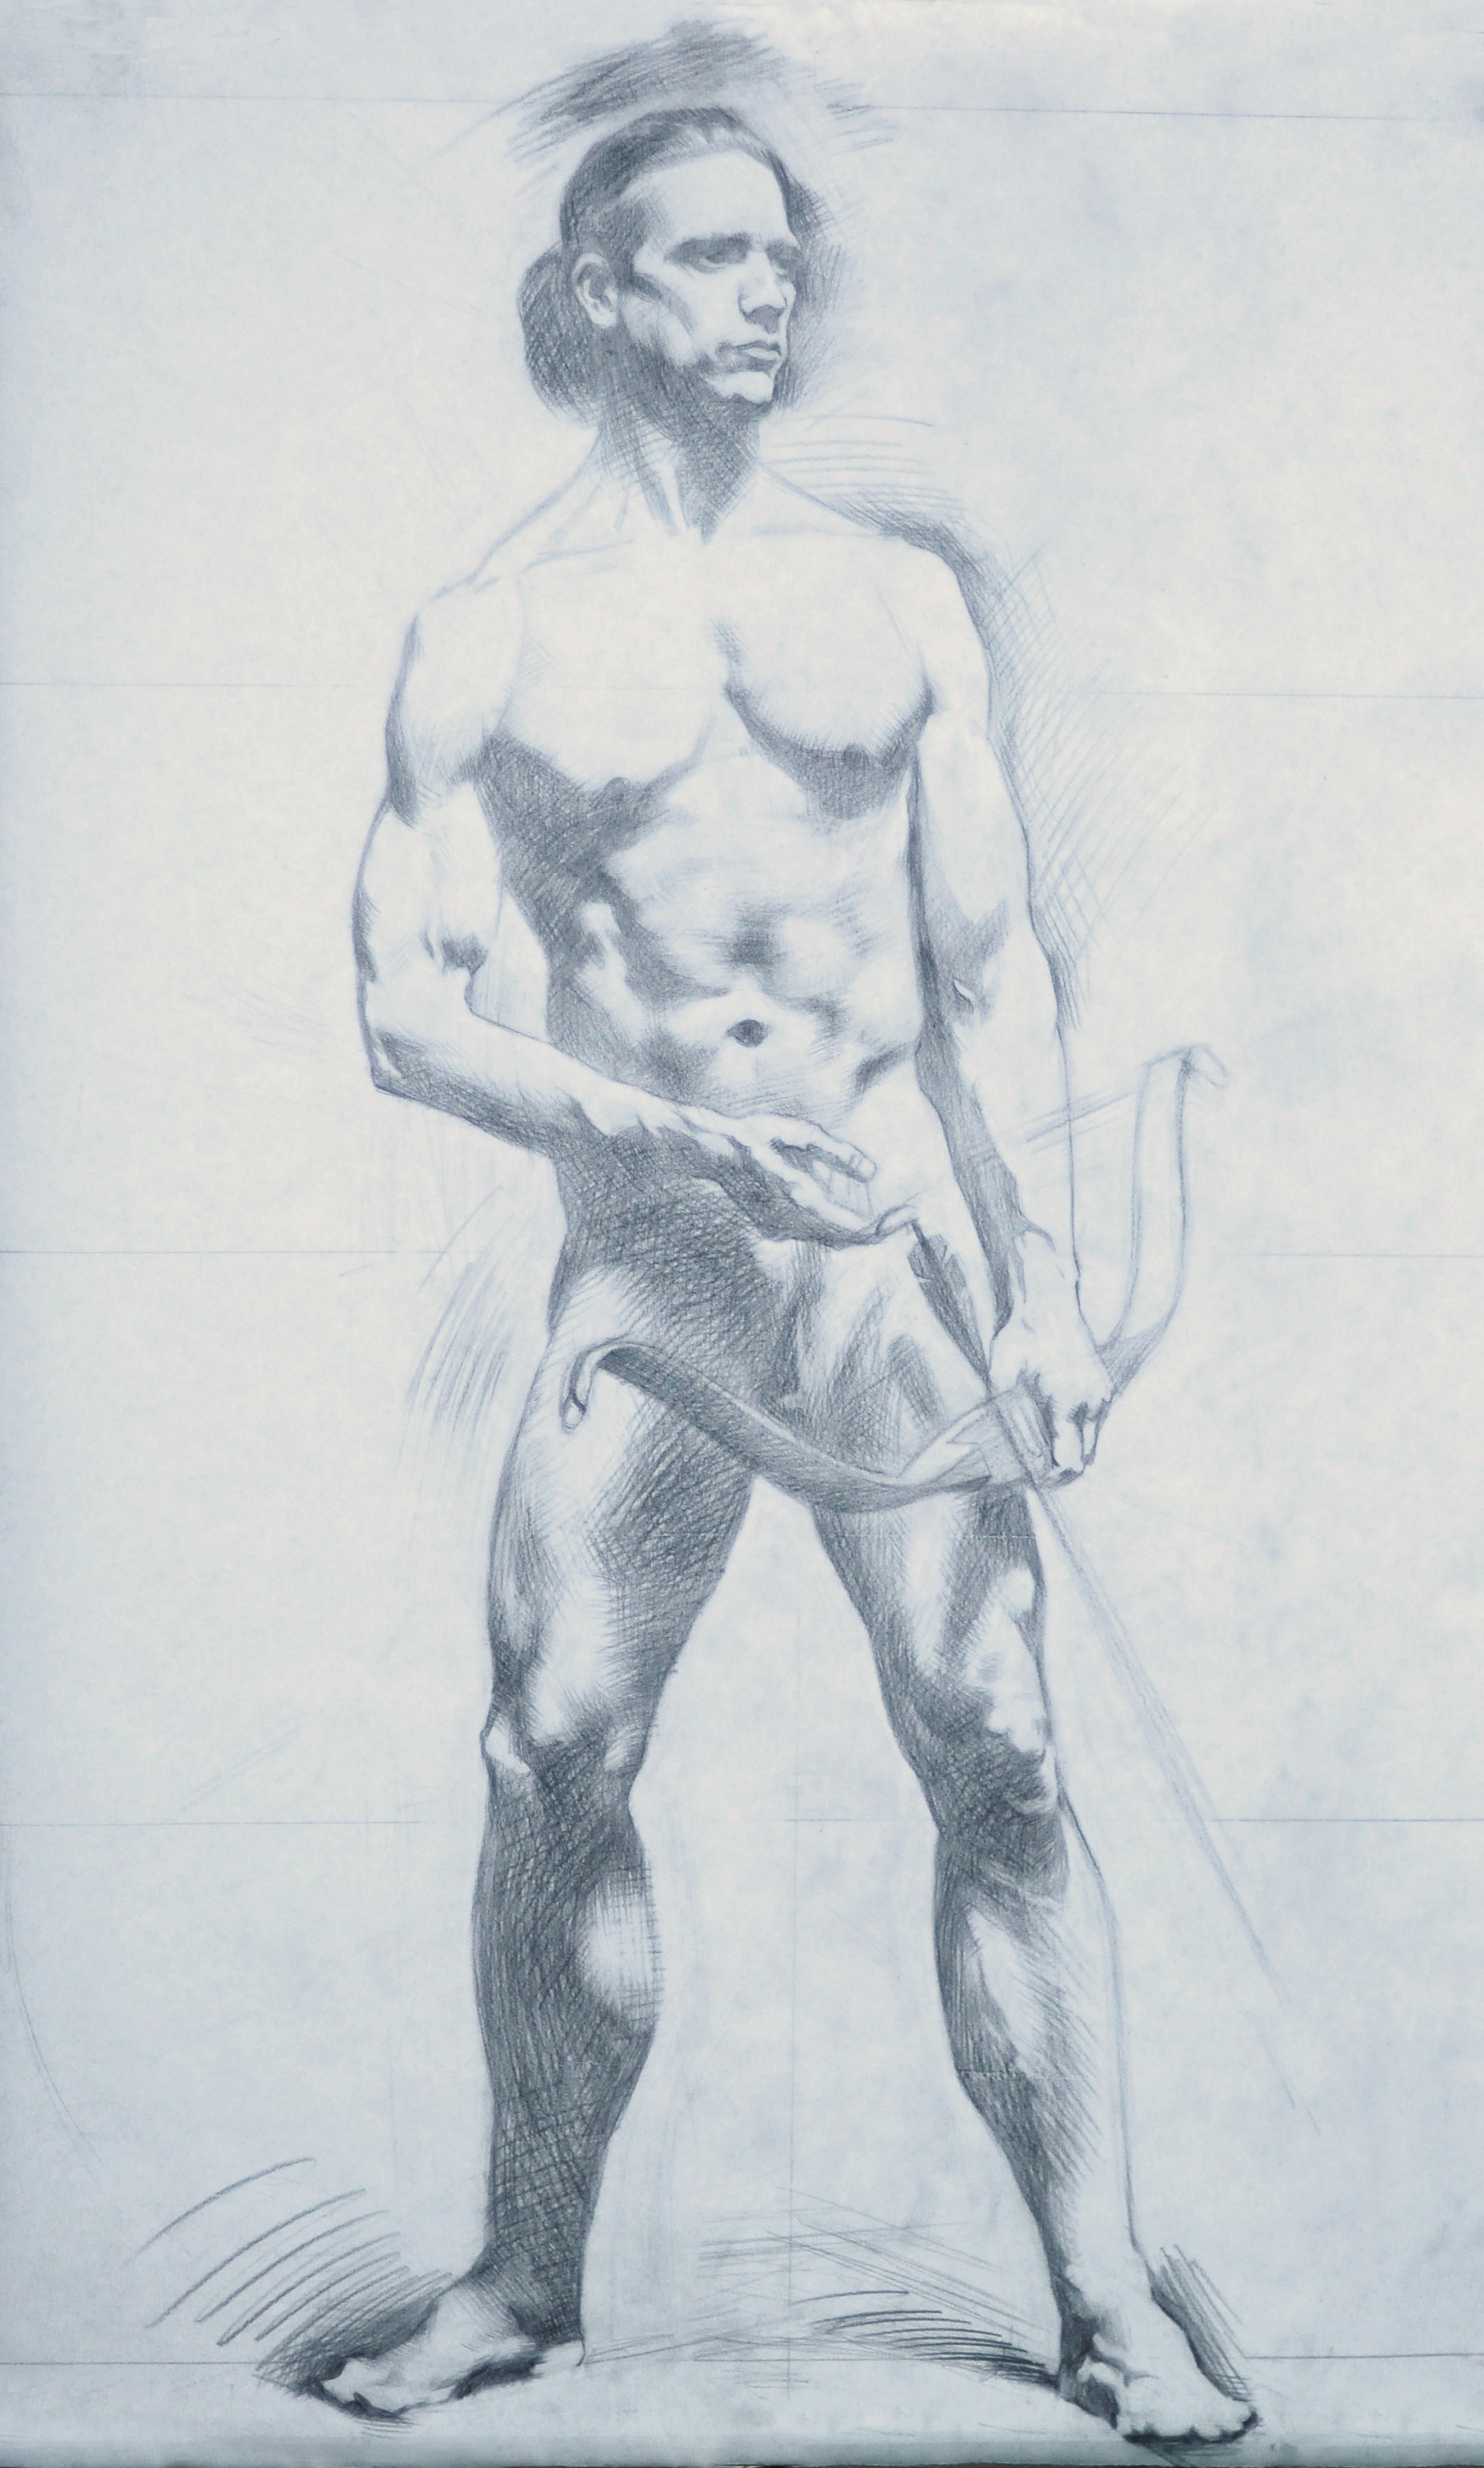 jason_pencil_drawing.jpg